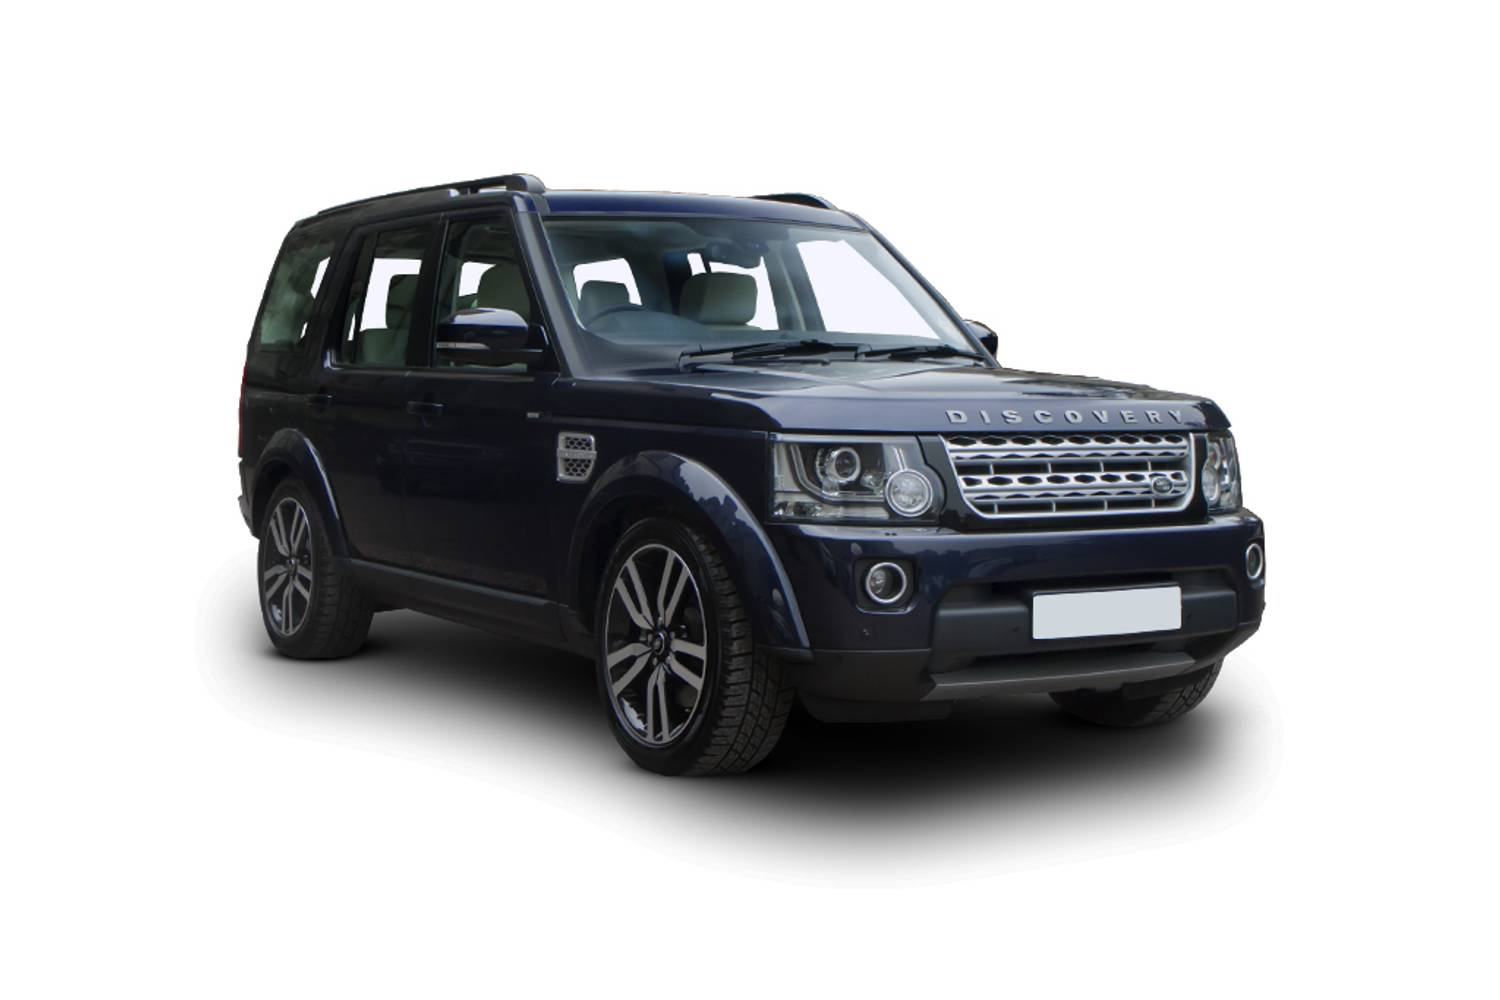 Land Rover Discovery Diesel SW 3.0 SDV6 5dr Auto